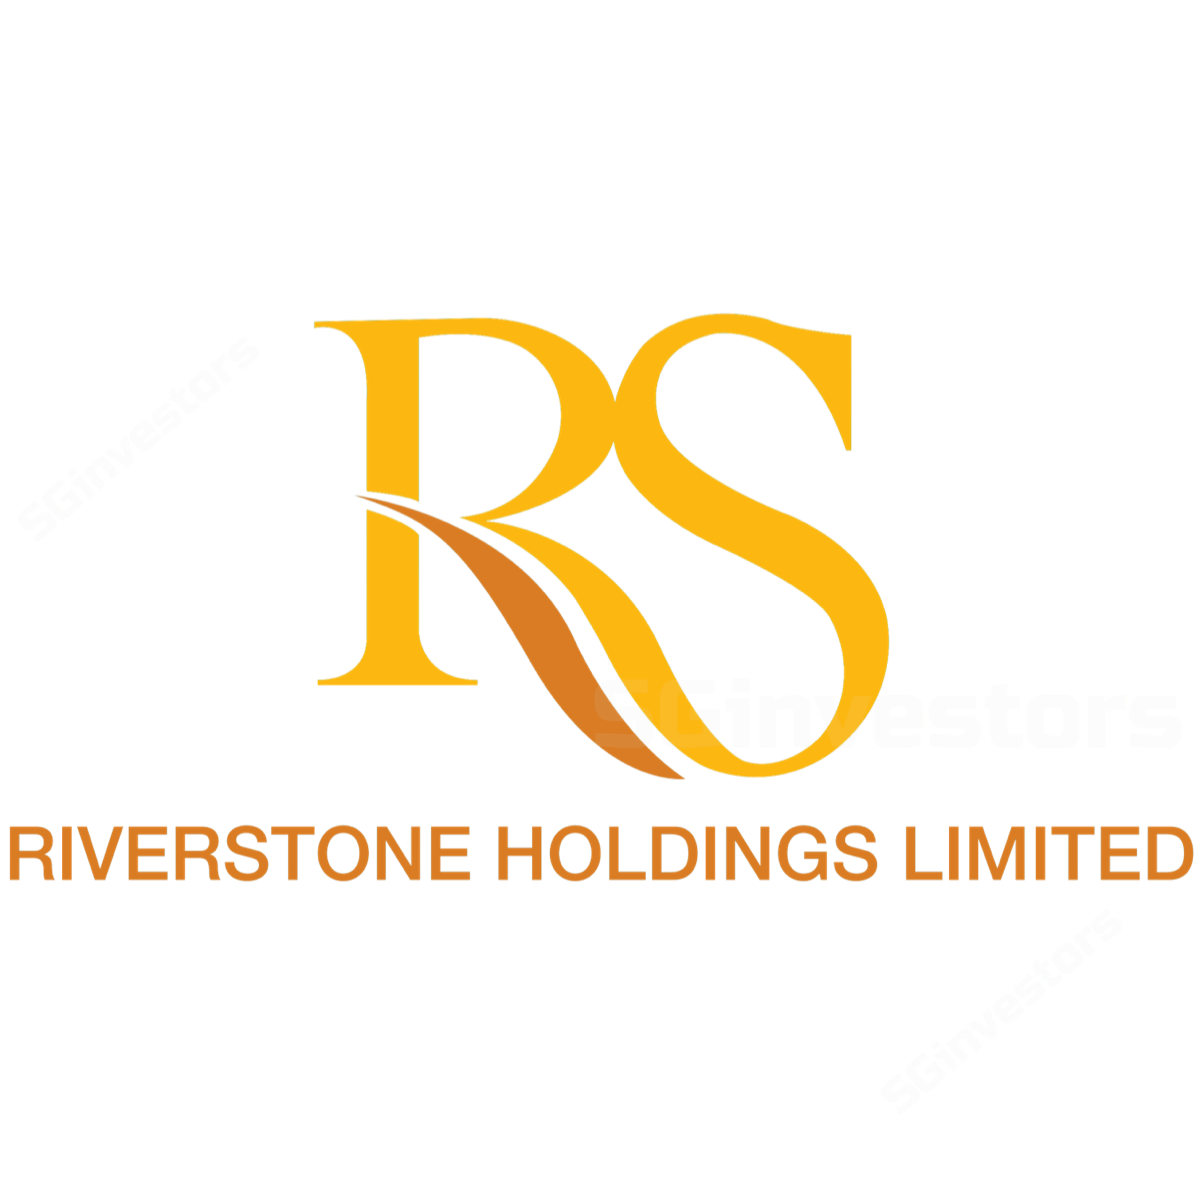 Riverstone Holdings (RSTON SP) - Maybank Kim Eng 2017-02-24: Lacklustre outlook on oversupply; HOLD